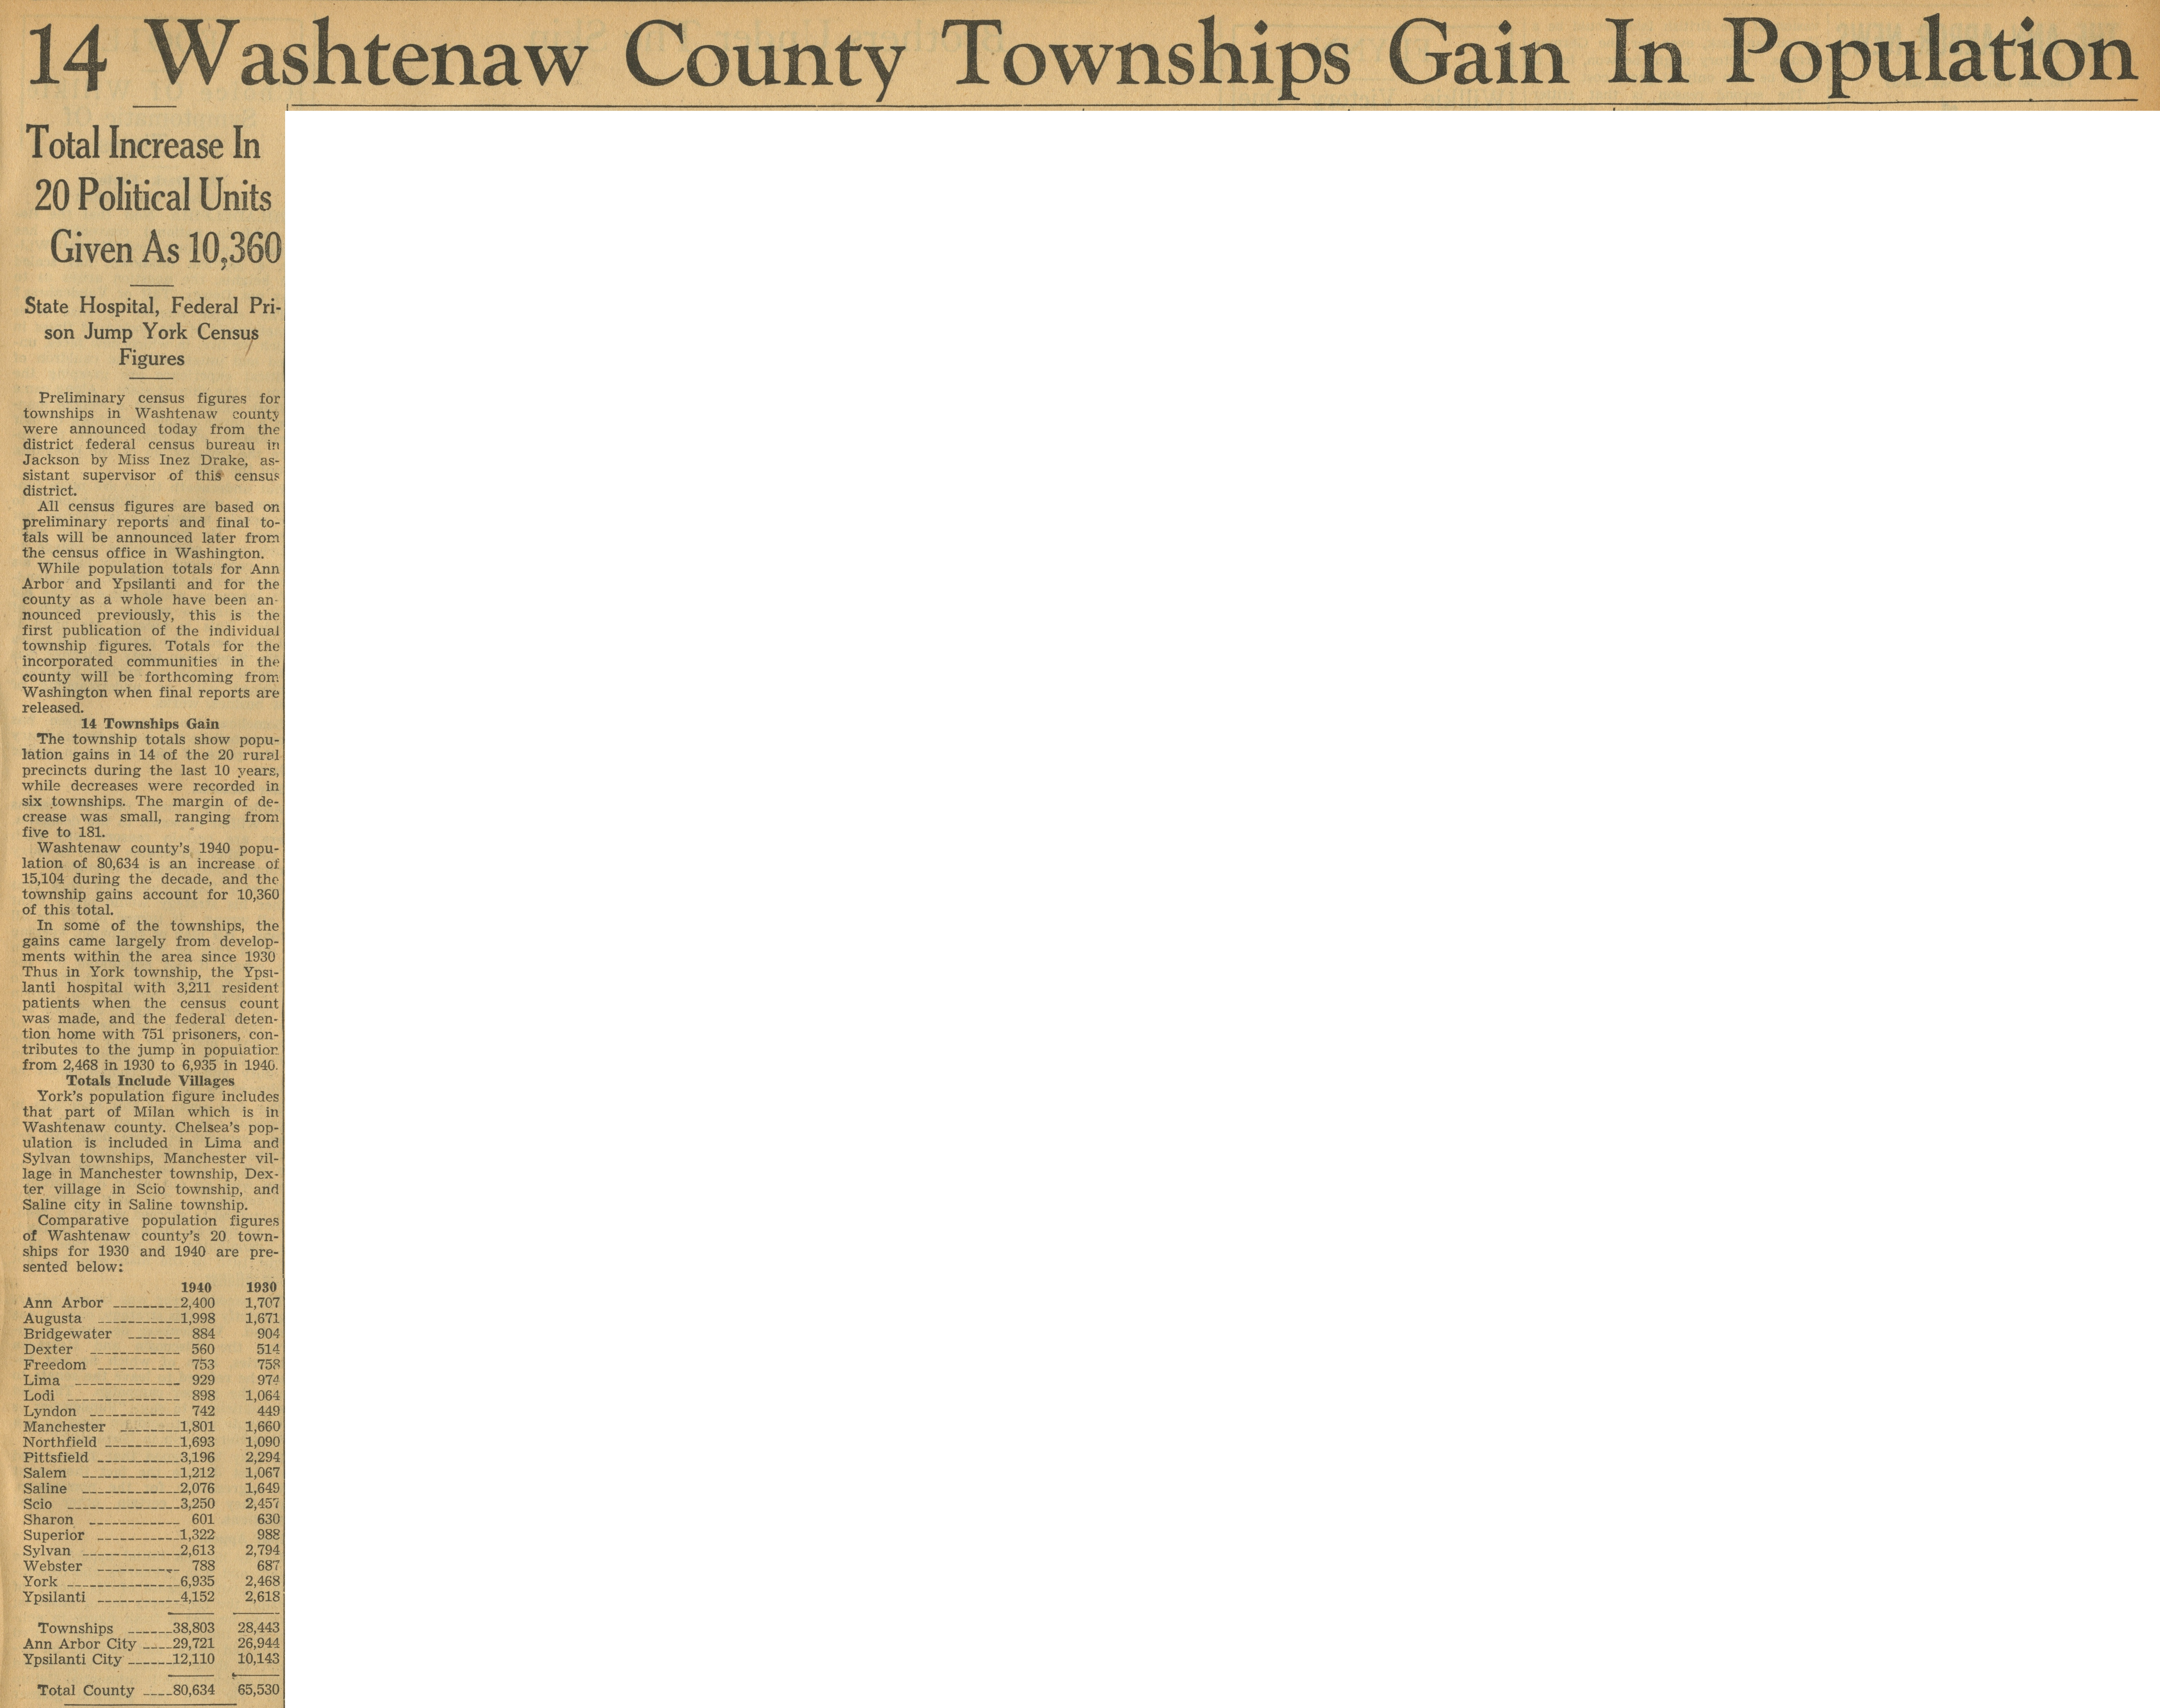 14 Washtenaw Counties Townships Gain in Population image